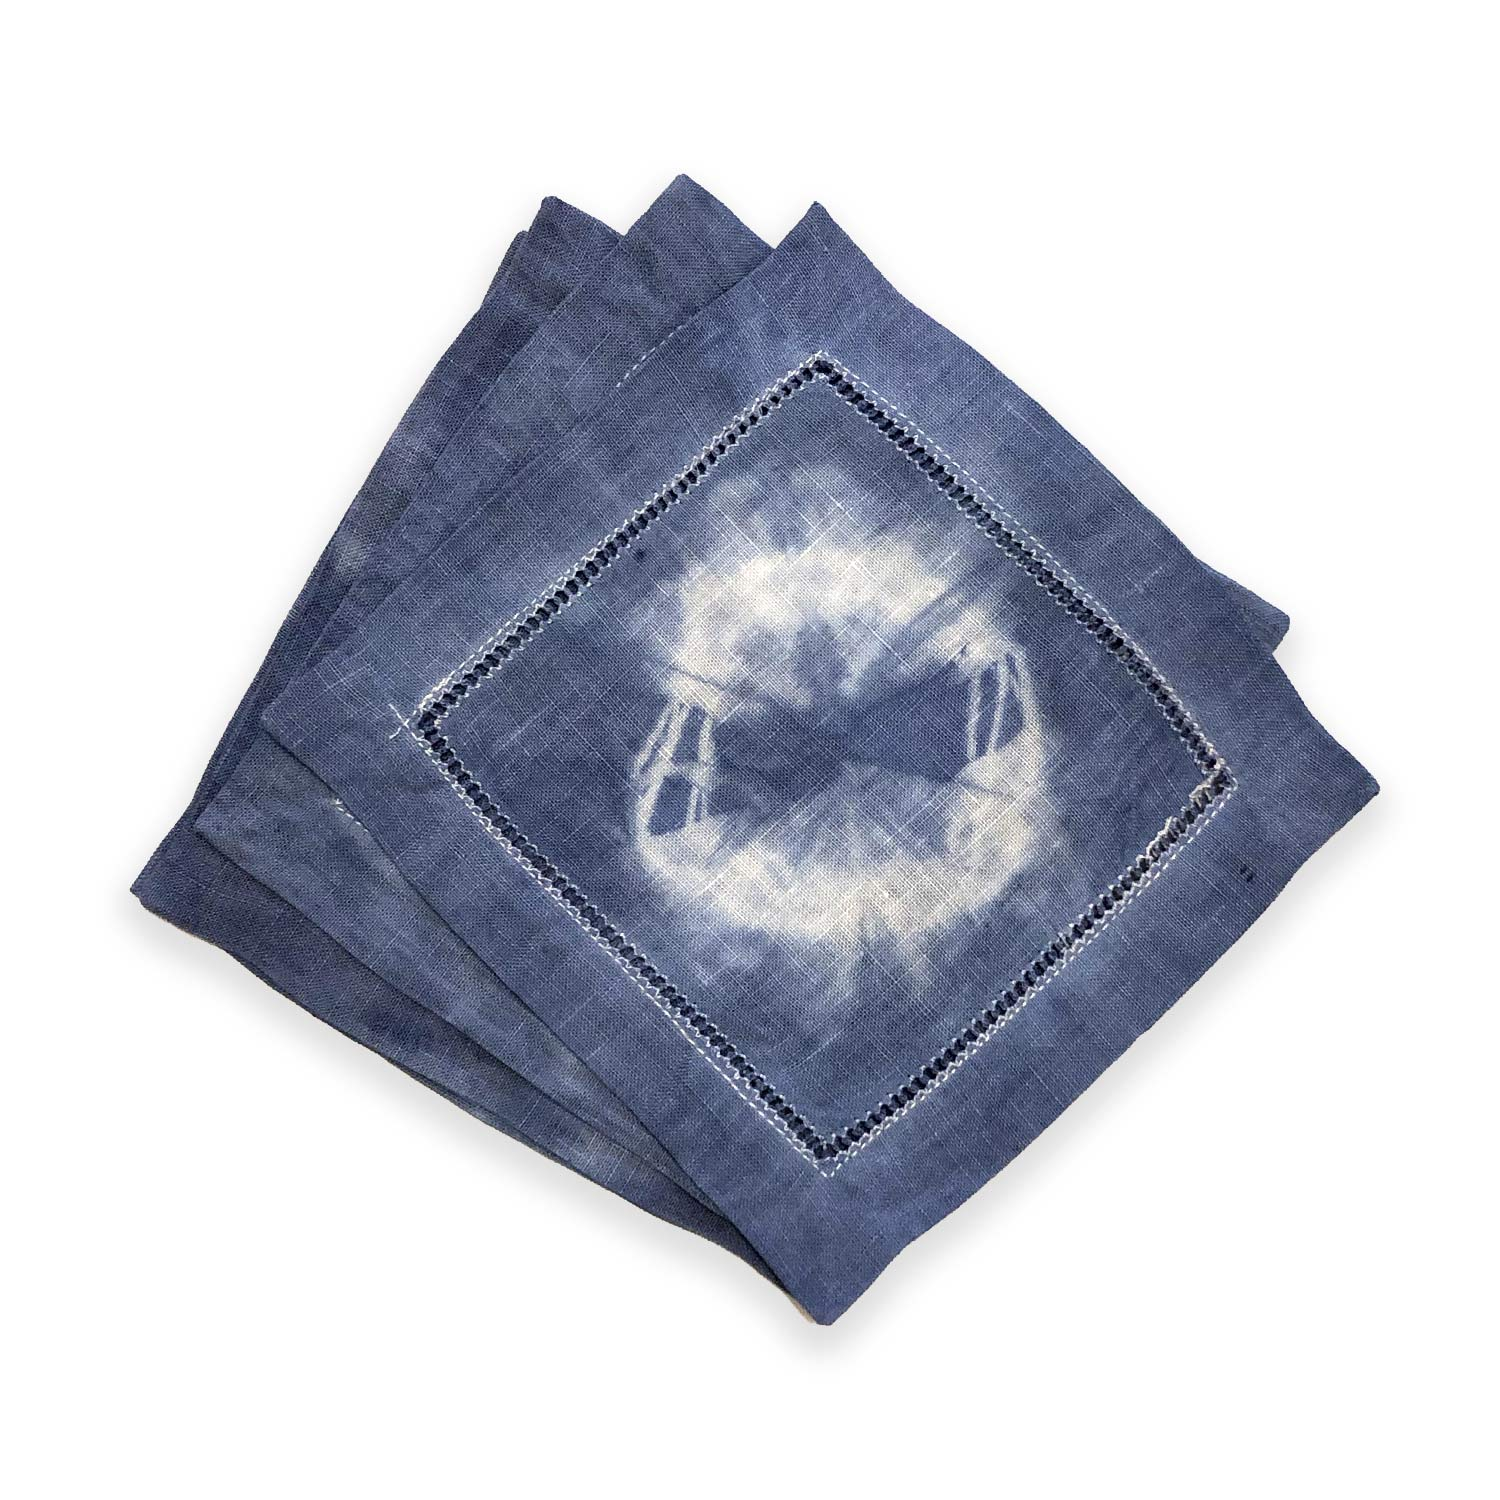 Hand-Dyed Dark Blue Shibori Cocktail Napkins (Set of 4)